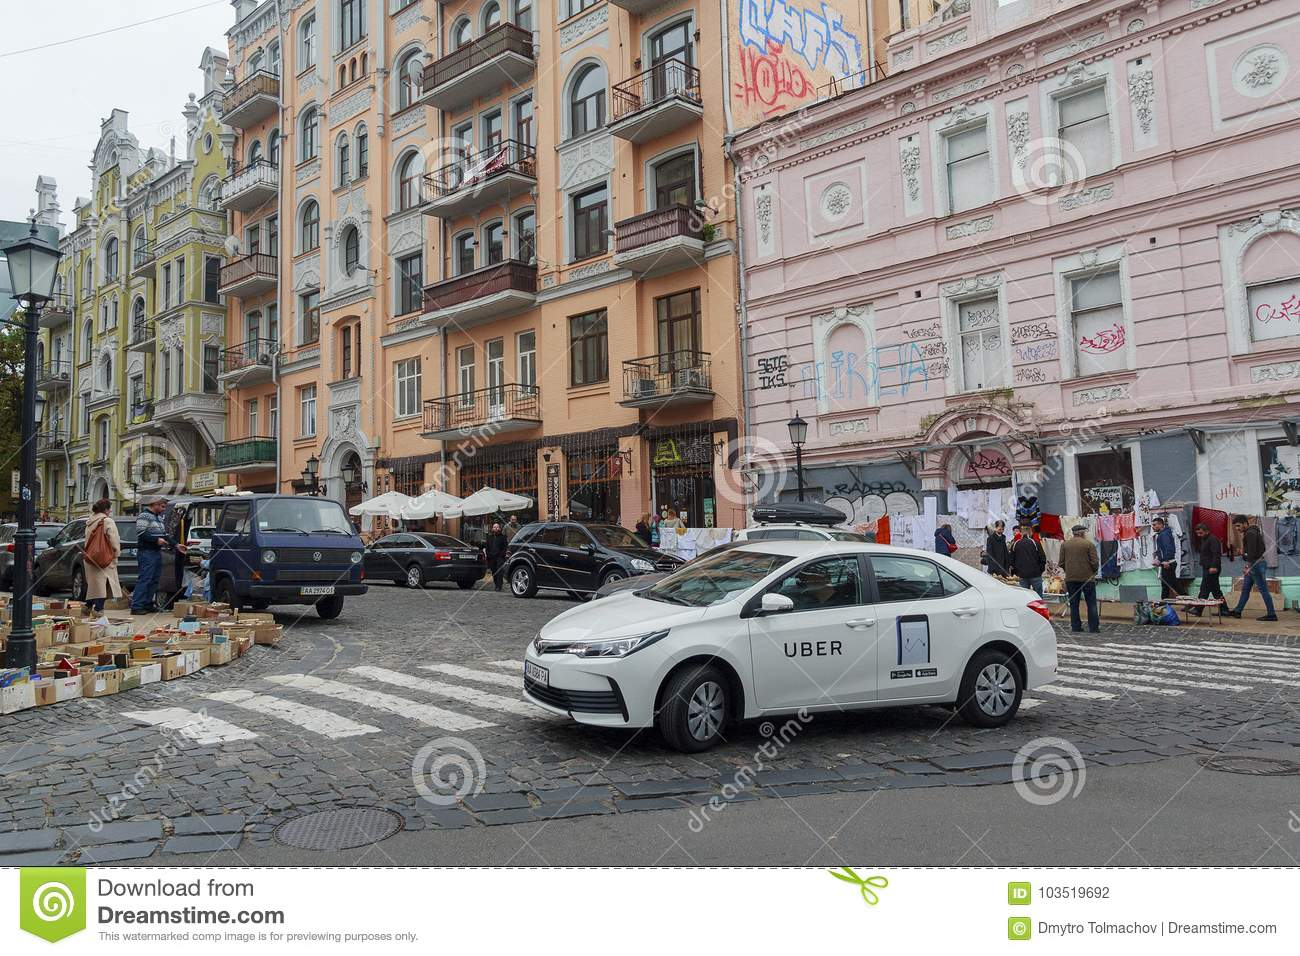 Taxi Kiev: a selection of sites